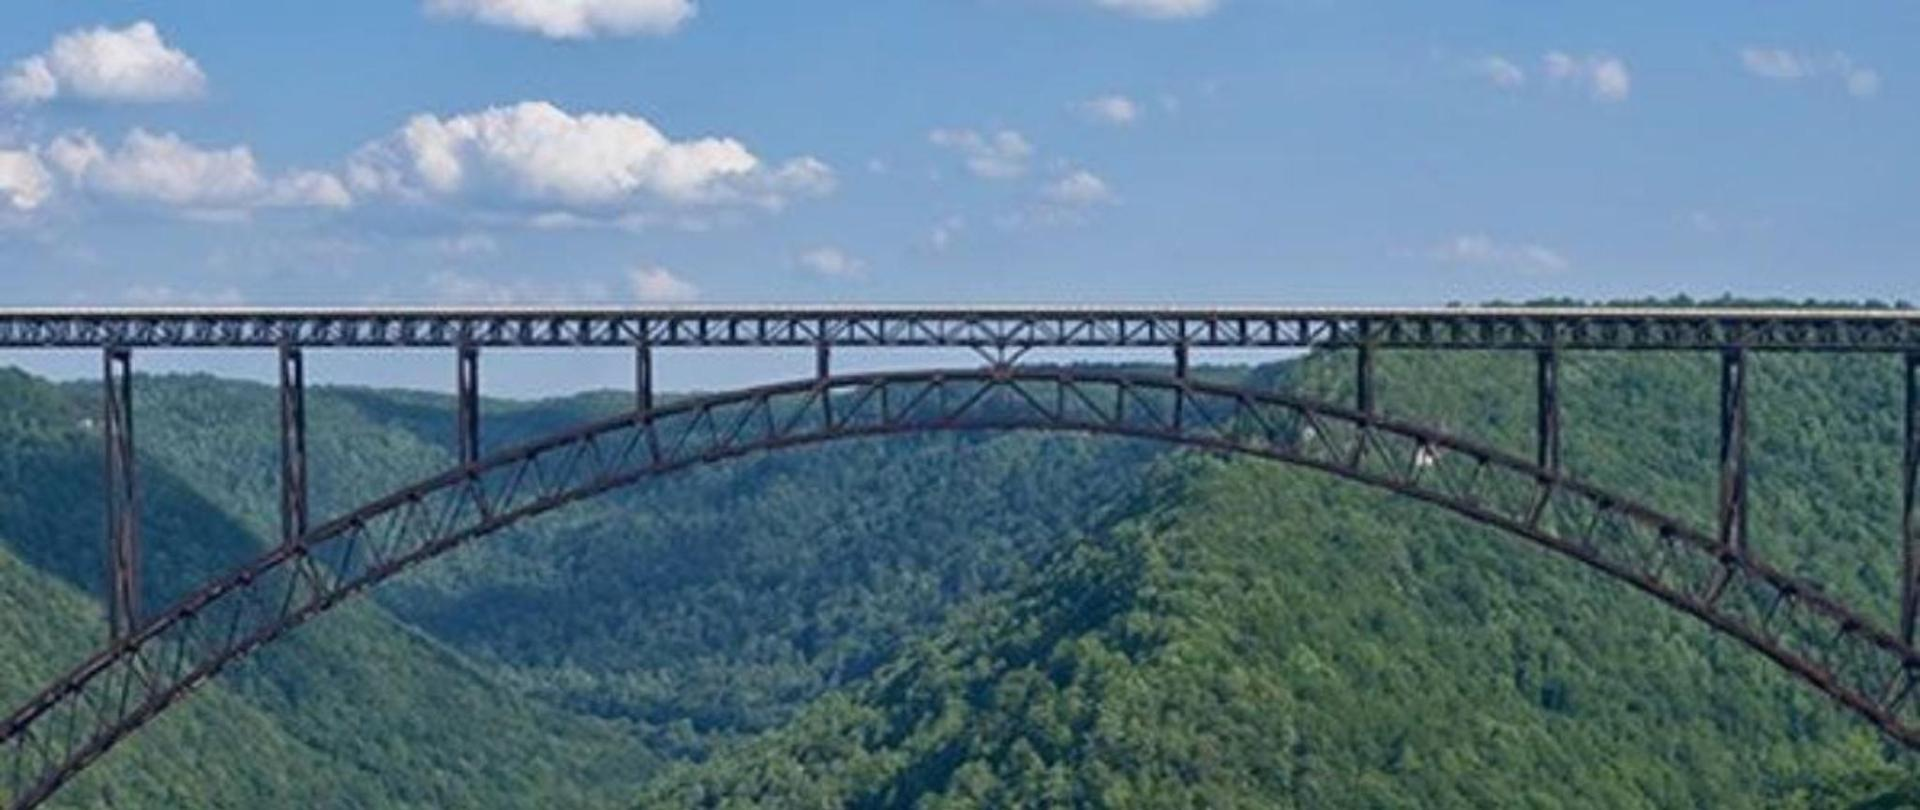 slide-new-river-gorge-bridge.jpg.1140x481_0_31_19063.jpg